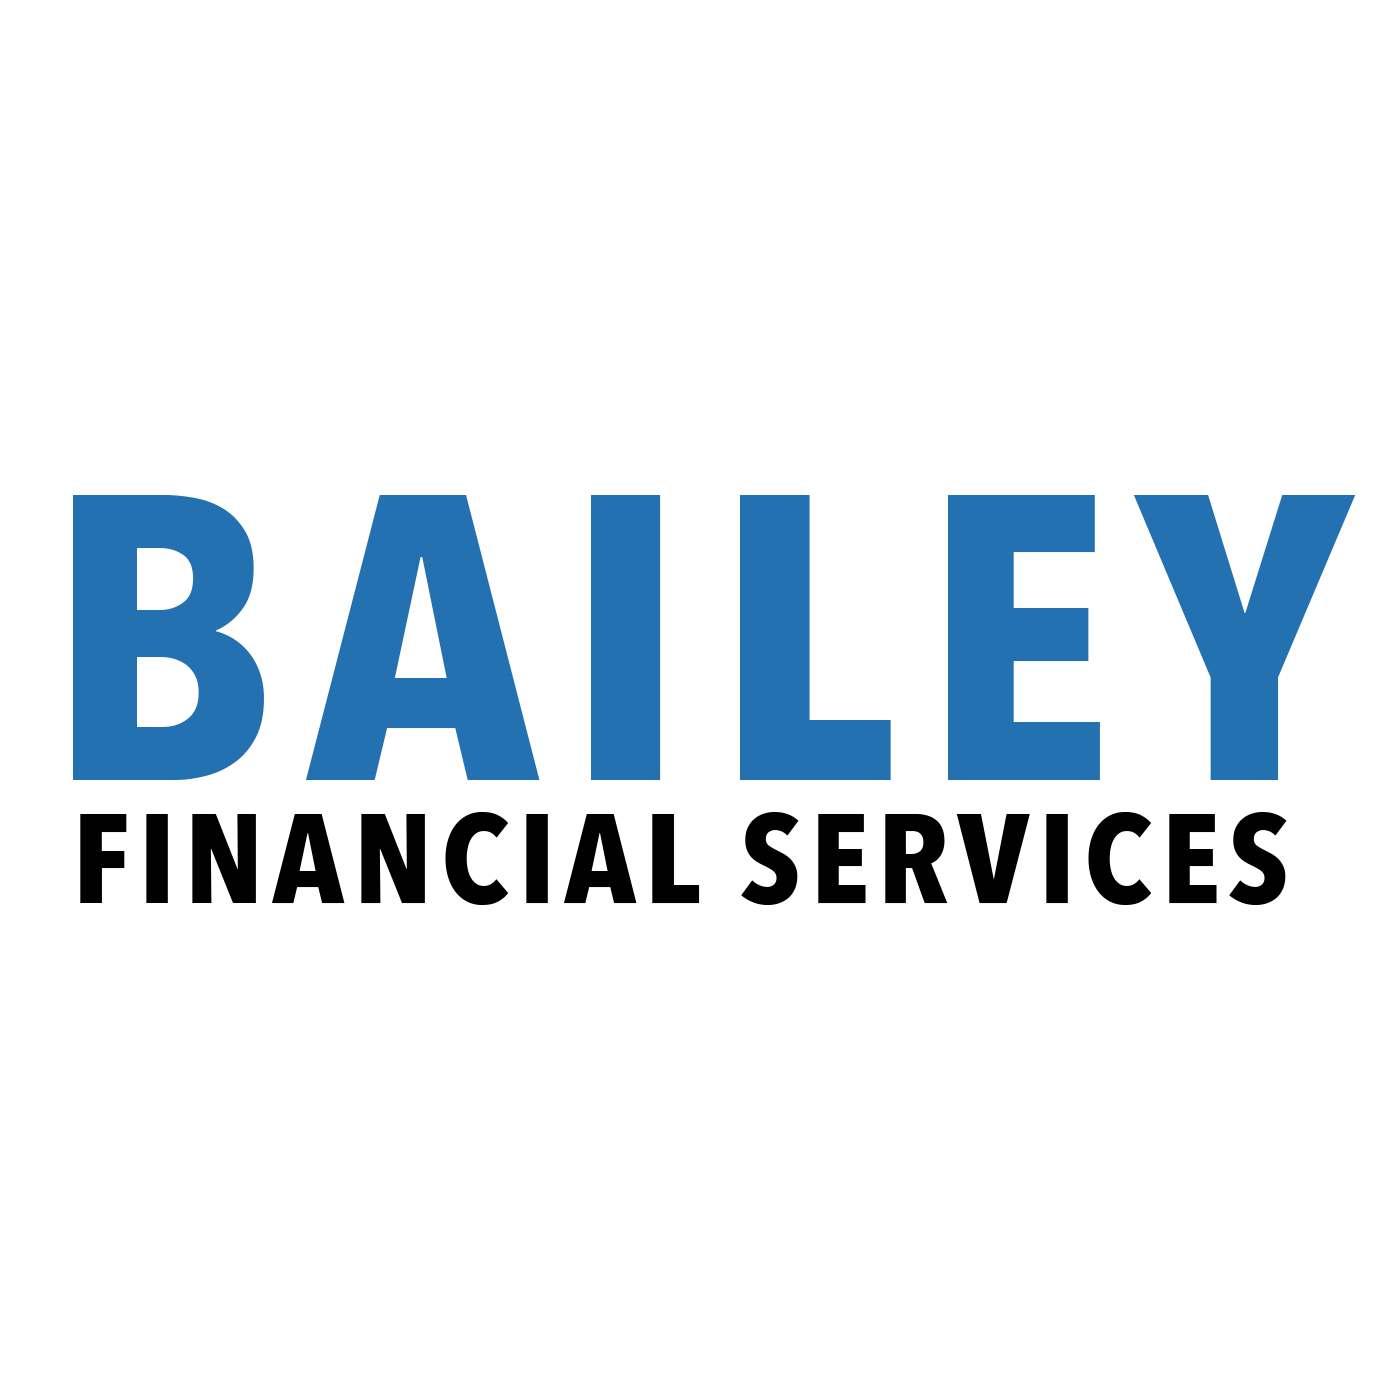 Bailey Financial Services